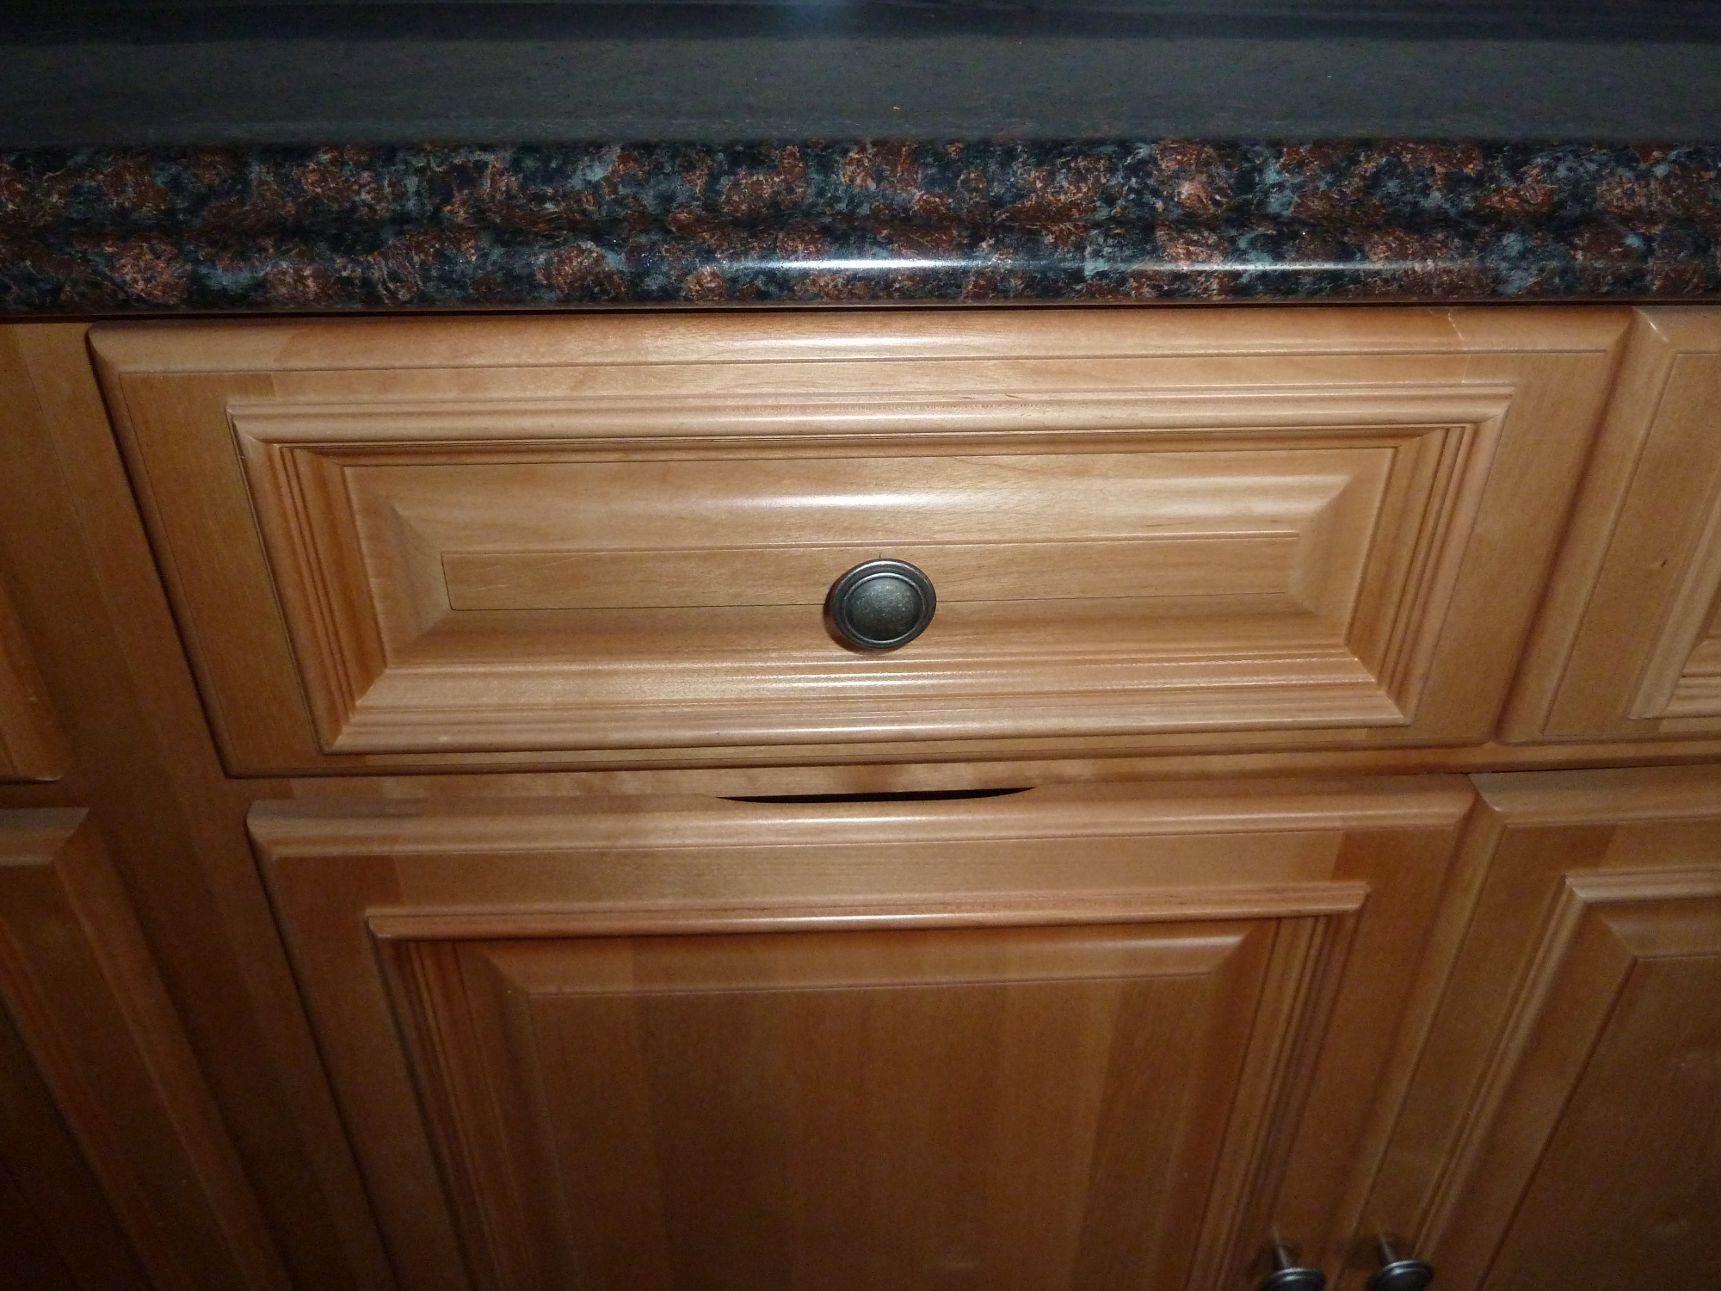 Santa Fe Copyright Kitchen Cabinet Discounts RTA Kitchen Cabinet Discounts CU Santa Fe RTA builder grade cabinets Copyright Kitchen Cabinet Discounts